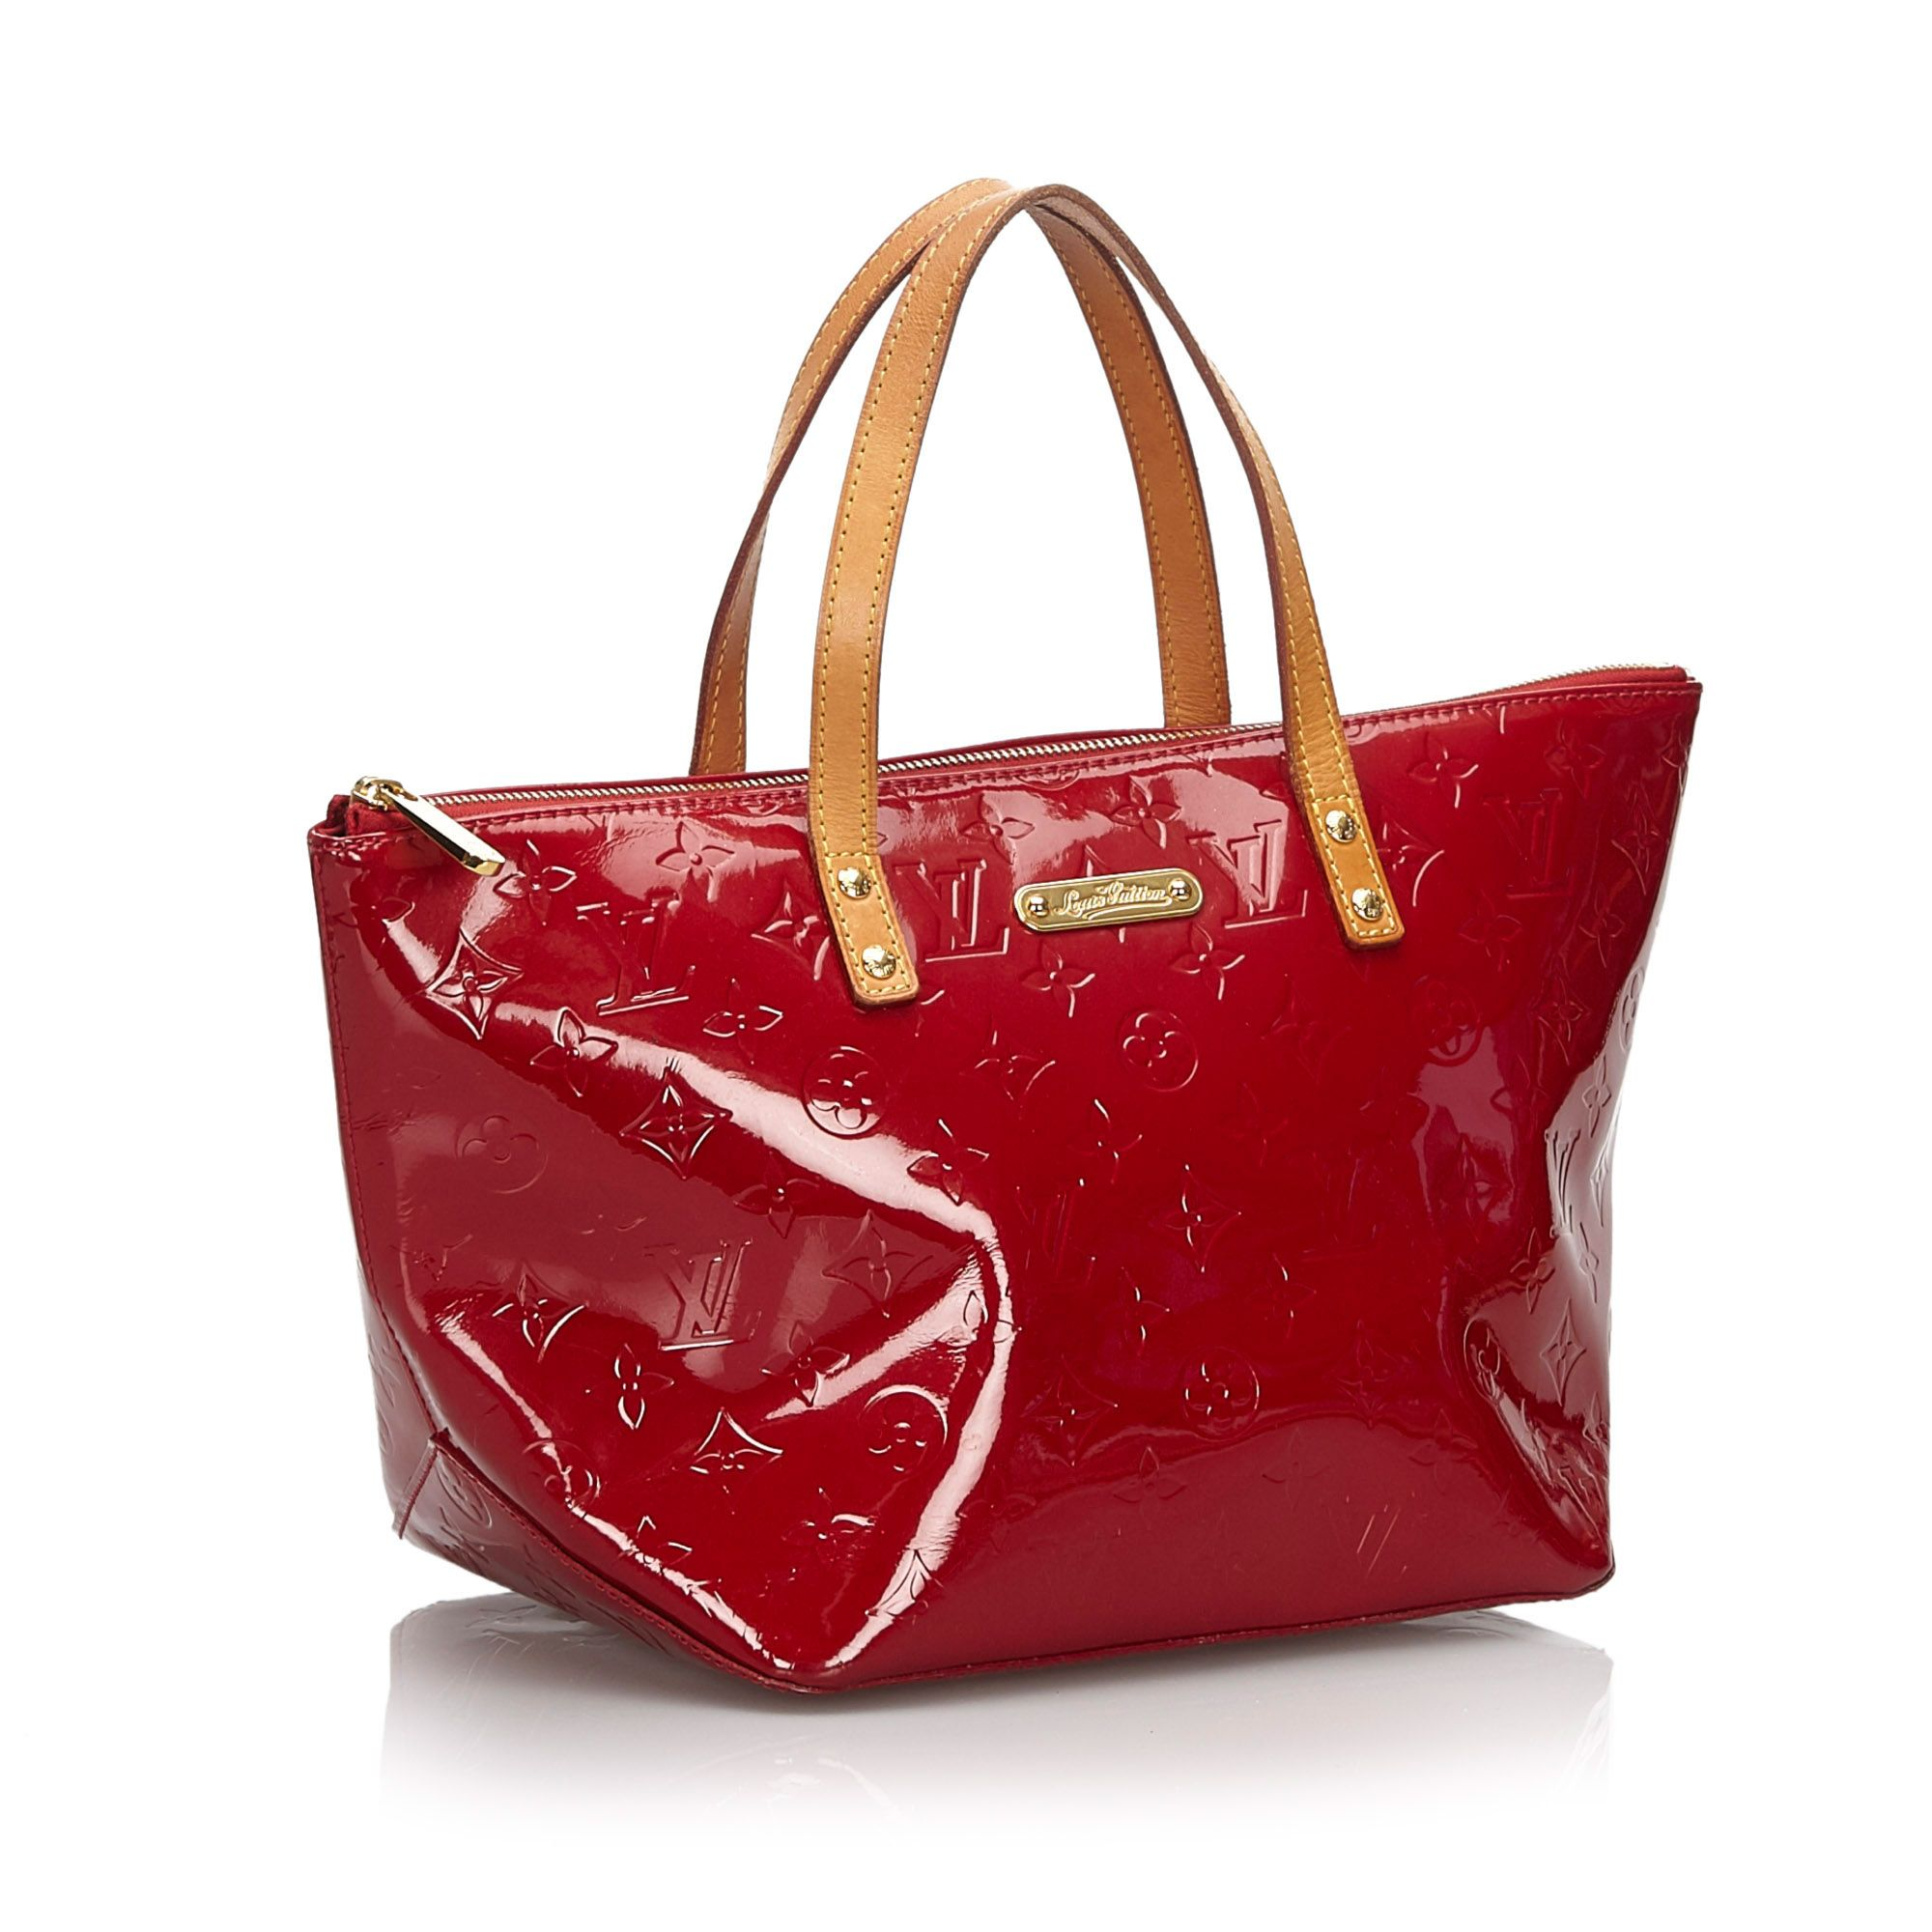 Vintage Louis Vuitton Vernis Bellevue PM Red